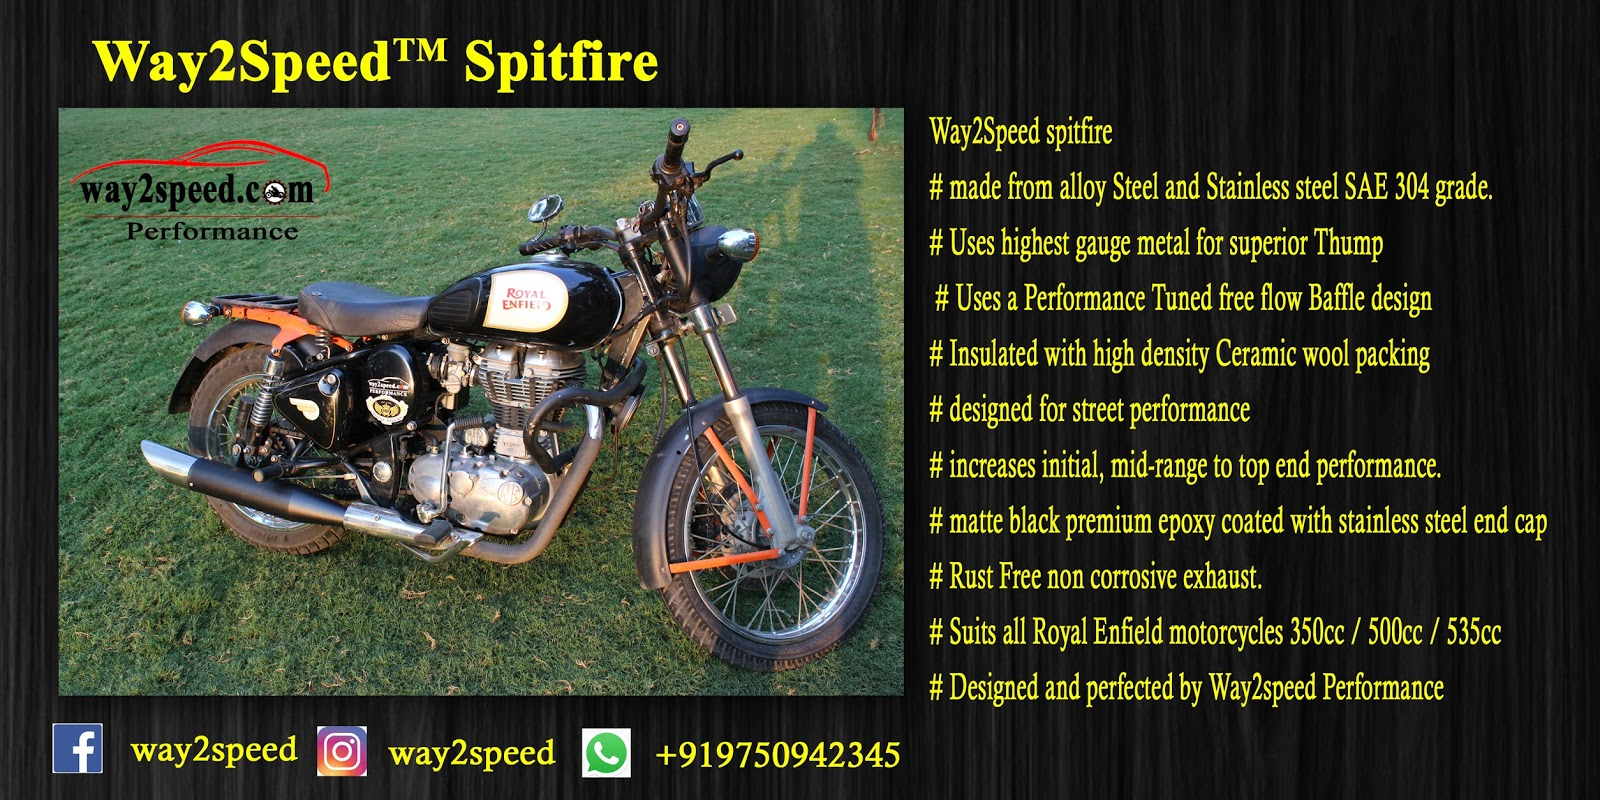 Way2Speed Spitfire Silencer For Royal Enfield  ( Royal Enfield exhaust | Best silencer for royal enfield | royal enfield classic 350 silencer sound | silencer for classic 350 | royal enfield glass wool silencer (ceramic wool) | silencer for bullet | Bullet silencer | Bullet silencer sound increase )  # Way2Speed Spitfire Silencer For Royal Enfield is made from alloy Steel and Stainless steel SAE 304 grade. # Way2Speed Spitfire Silencer For Royal Enfield Uses highest gauge metal for superior Thump # Way2Speed Spitfire Silencer For Royal Enfield Uses a Performance Tuned free flow Baffle design # Way2Speed Spitfire Silencer For Royal Enfield is Insulated with high density Ceramic wool packing # Royal Enfield Way2Speed spitfire is designed for street performance # Royal Enfield Way2Speed spitfire increases initial, mid-range to top end performance.  # Royal Enfield Way2Speed spitfire is matte black premium epoxy coated with stainless steel end cap  # Way2Speed Spitfire Silencer For Royal Enfield Rust Free non corrosive exhaust. # Way2Speed Spitfire Silencer For Royal Enfield is Designed and perfected by Way2speed Performance